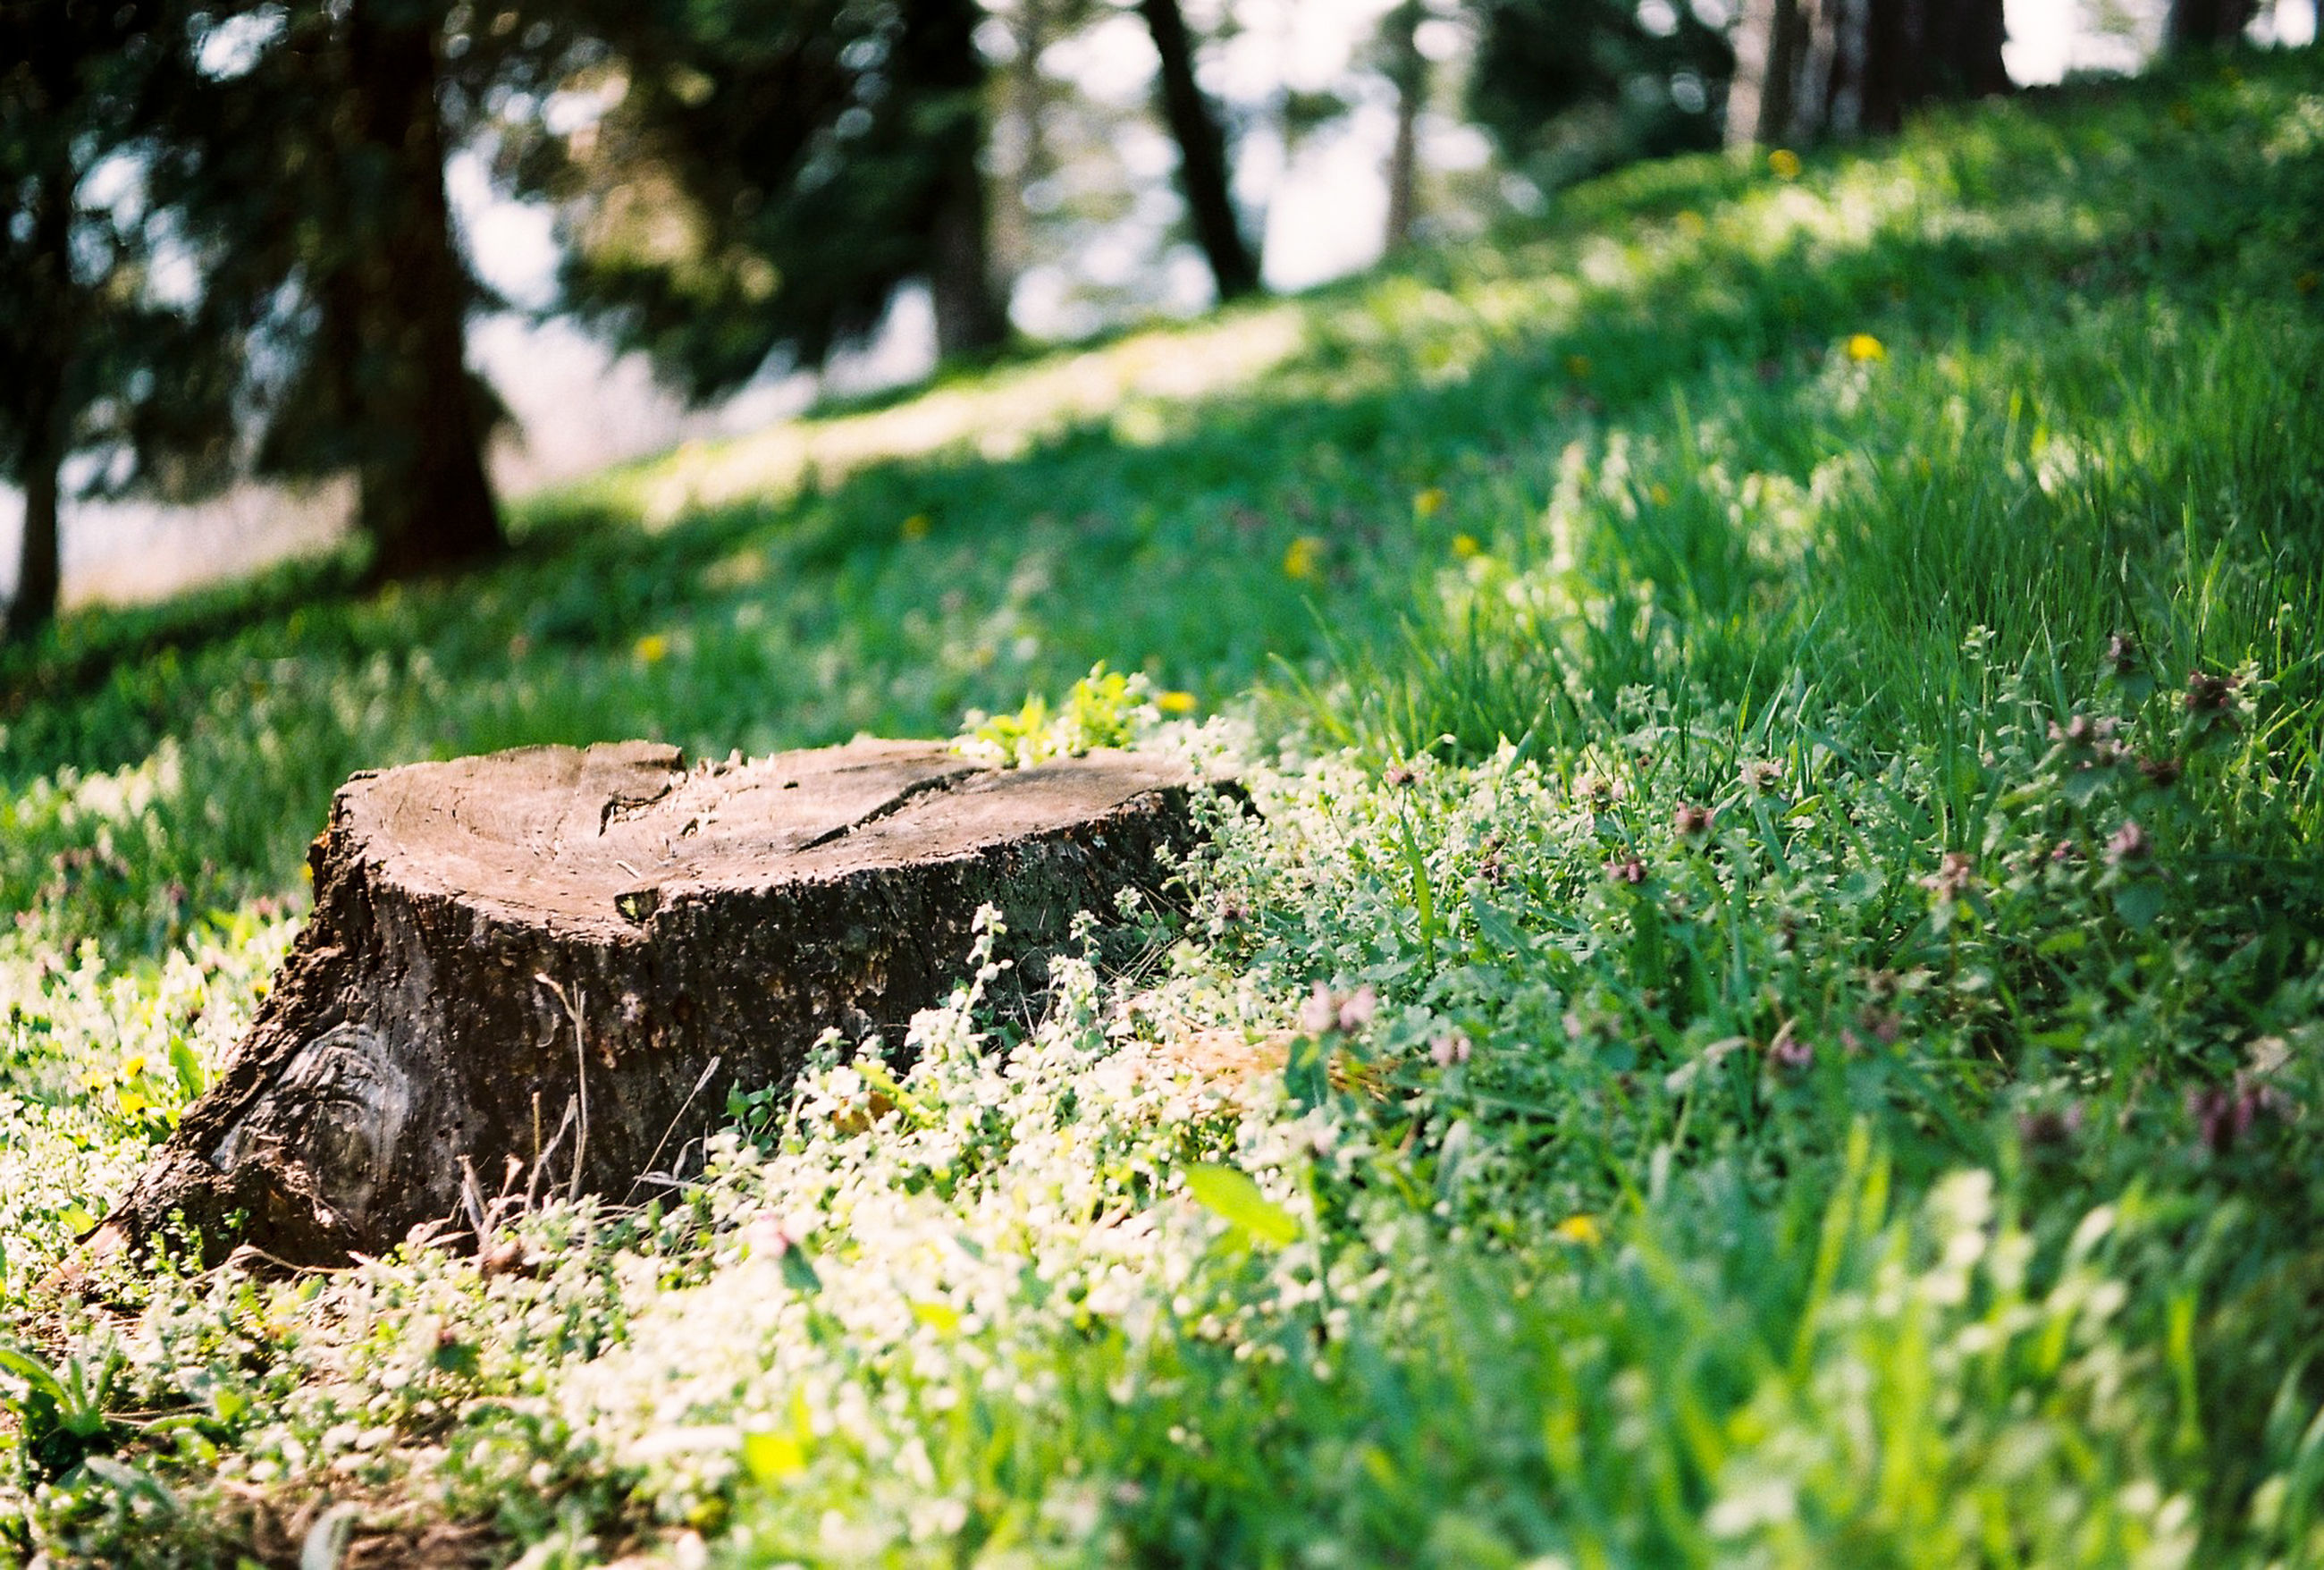 green, grass, plant, lawn, nature, tree, woodland, leaf, land, day, flower, no people, forest, natural environment, garden, outdoors, sunlight, meadow, selective focus, autumn, field, growth, beauty in nature, wood, tranquility, tree trunk, rural area, environment, wildlife, focus on foreground